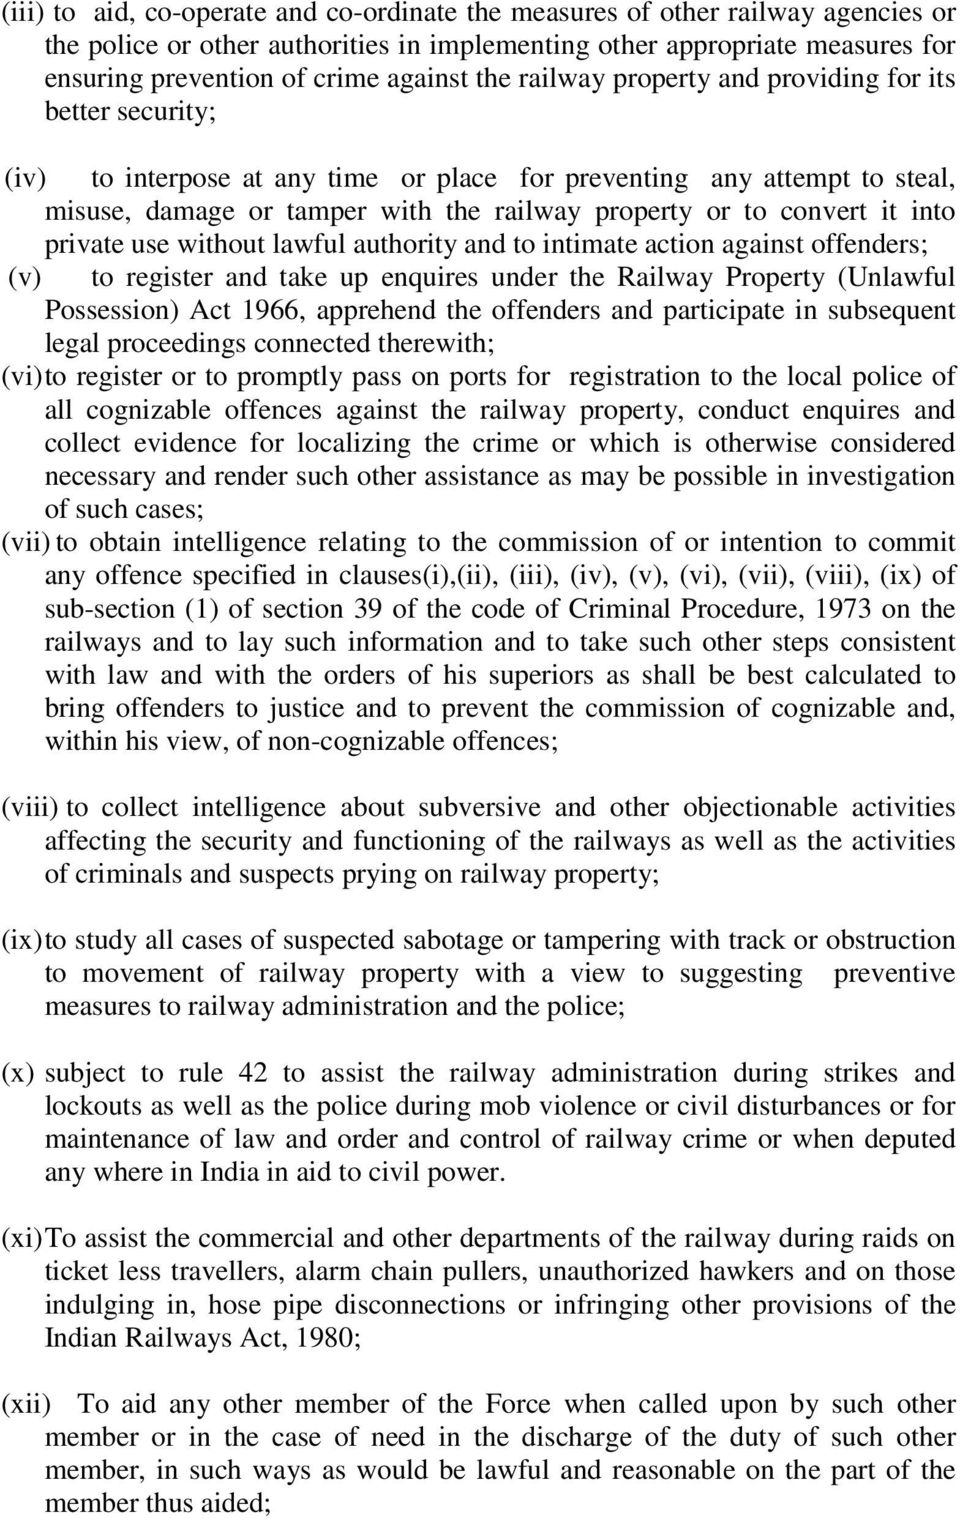 convert it into private use without lawful authority and to intimate action against offenders; (v) to register and take up enquires under the Railway Property (Unlawful Possession) Act 1966,